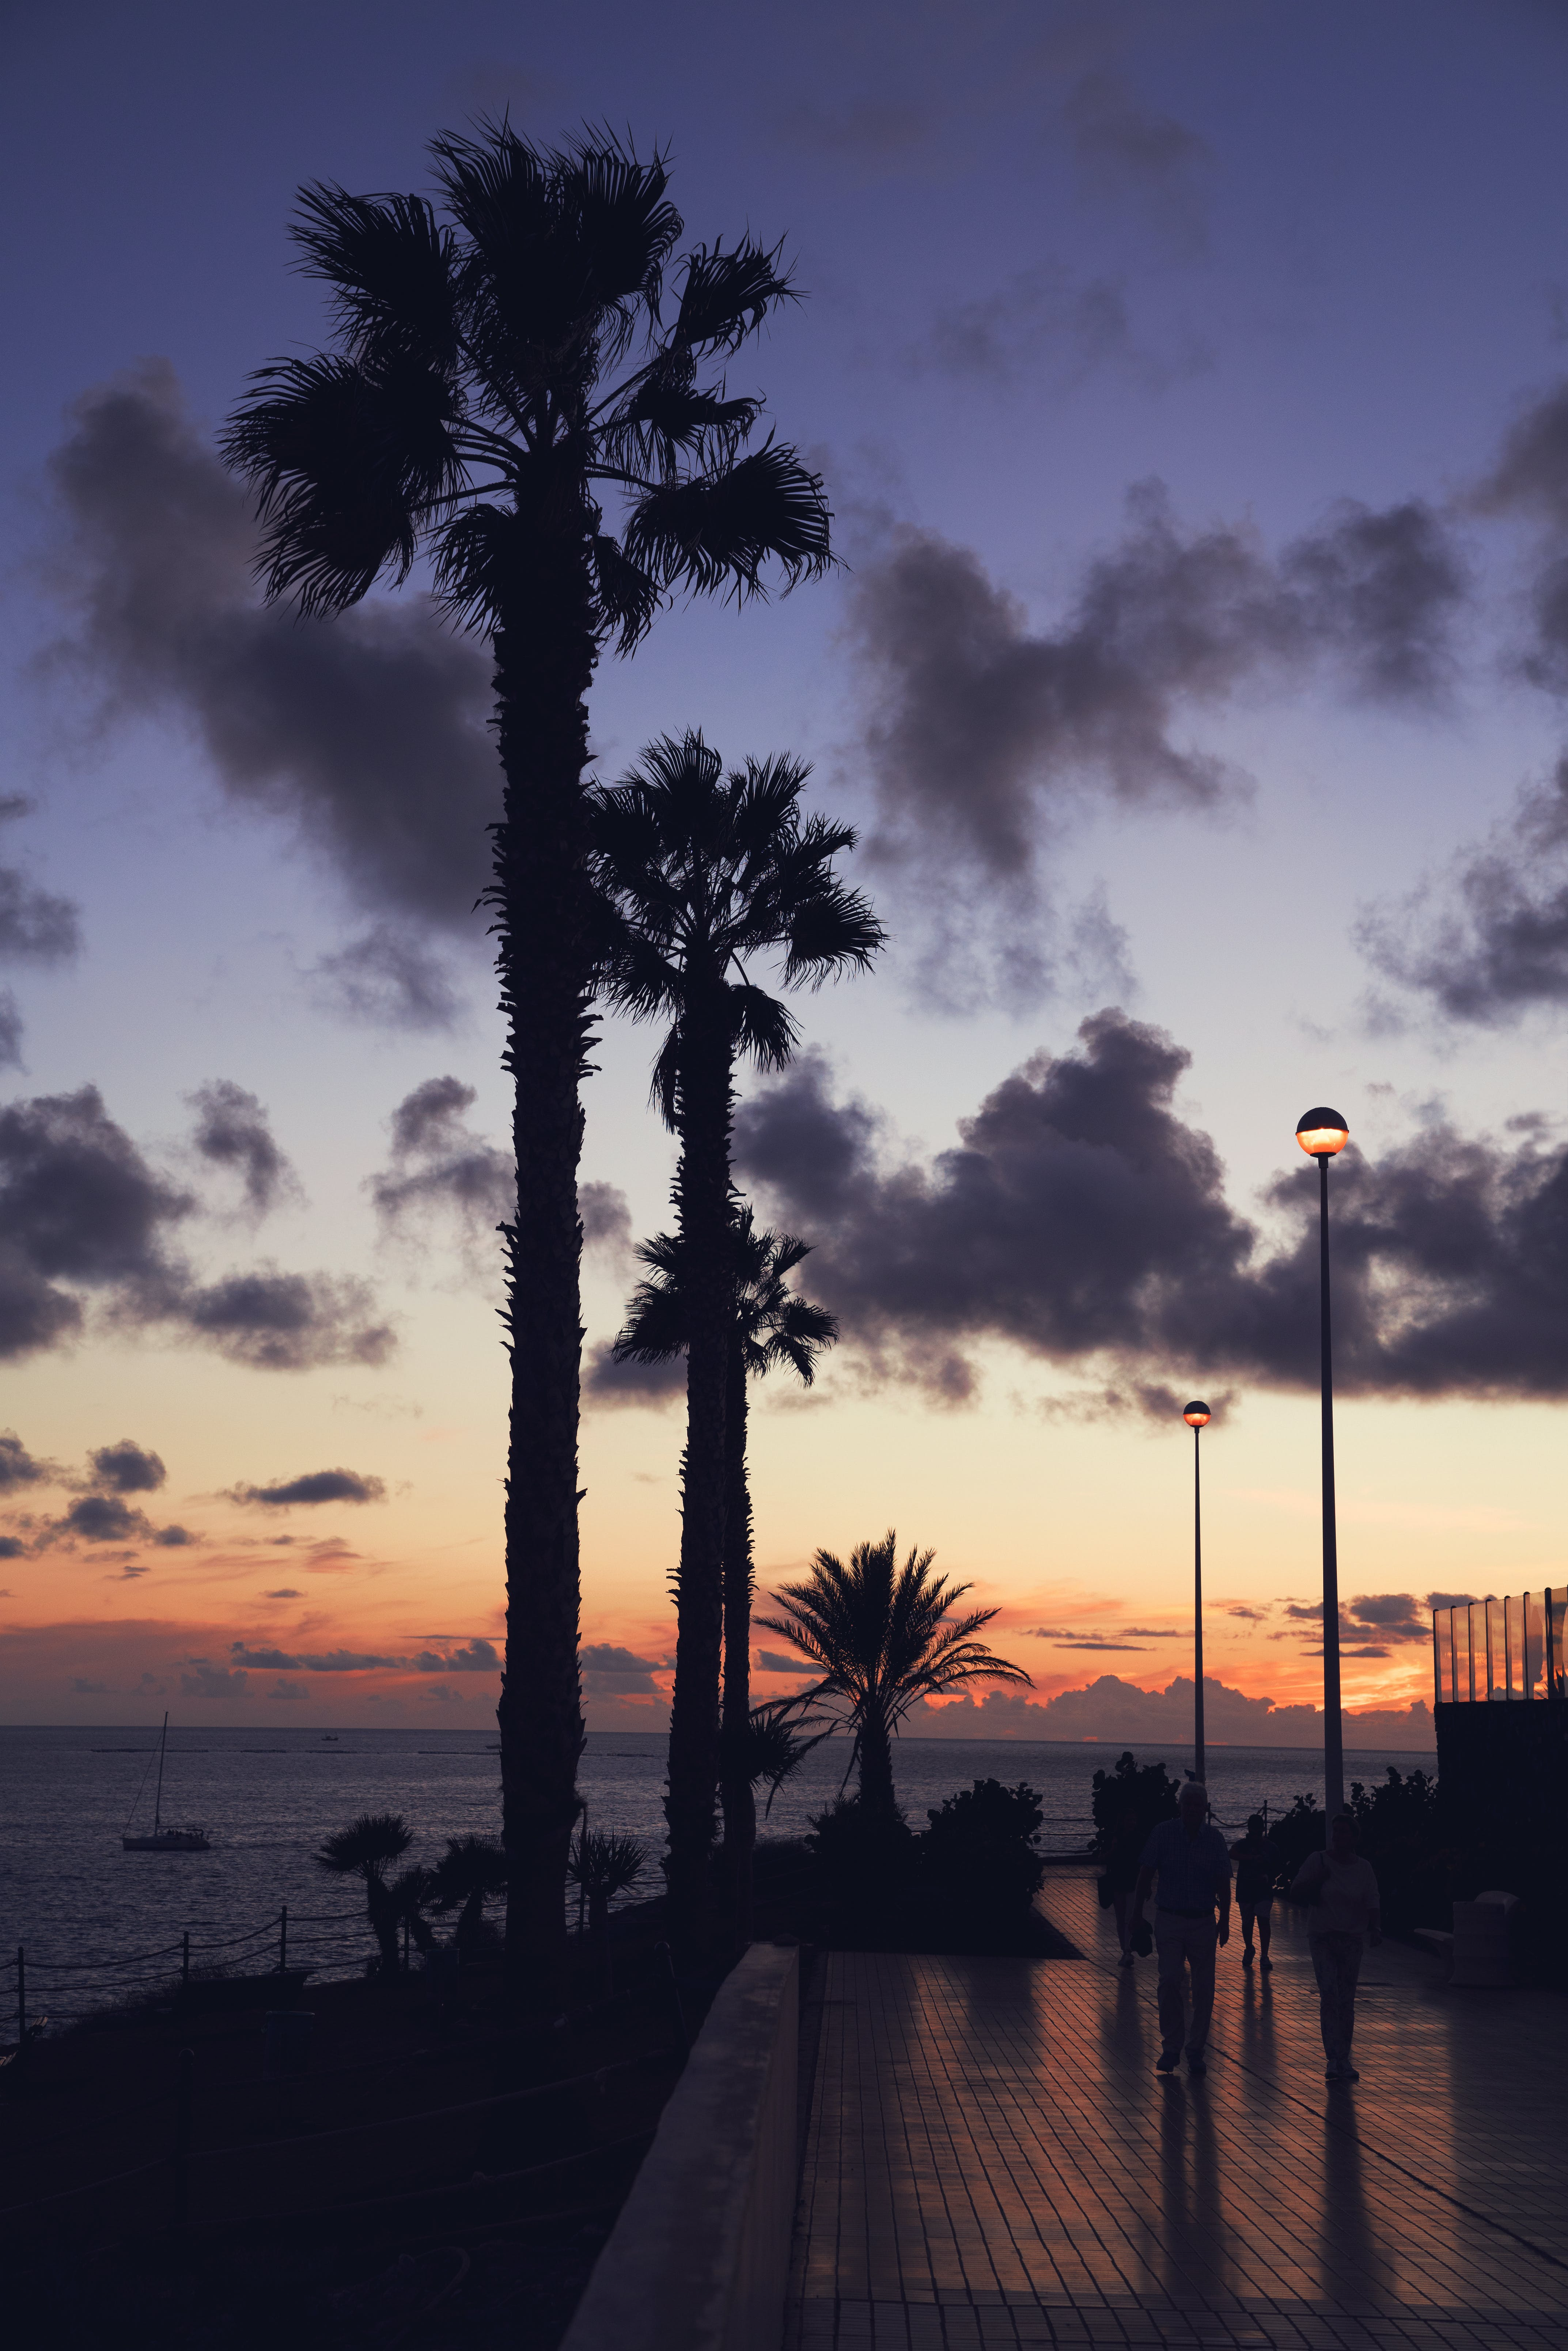 Silhouette Photography of Palm Trees Near Sea